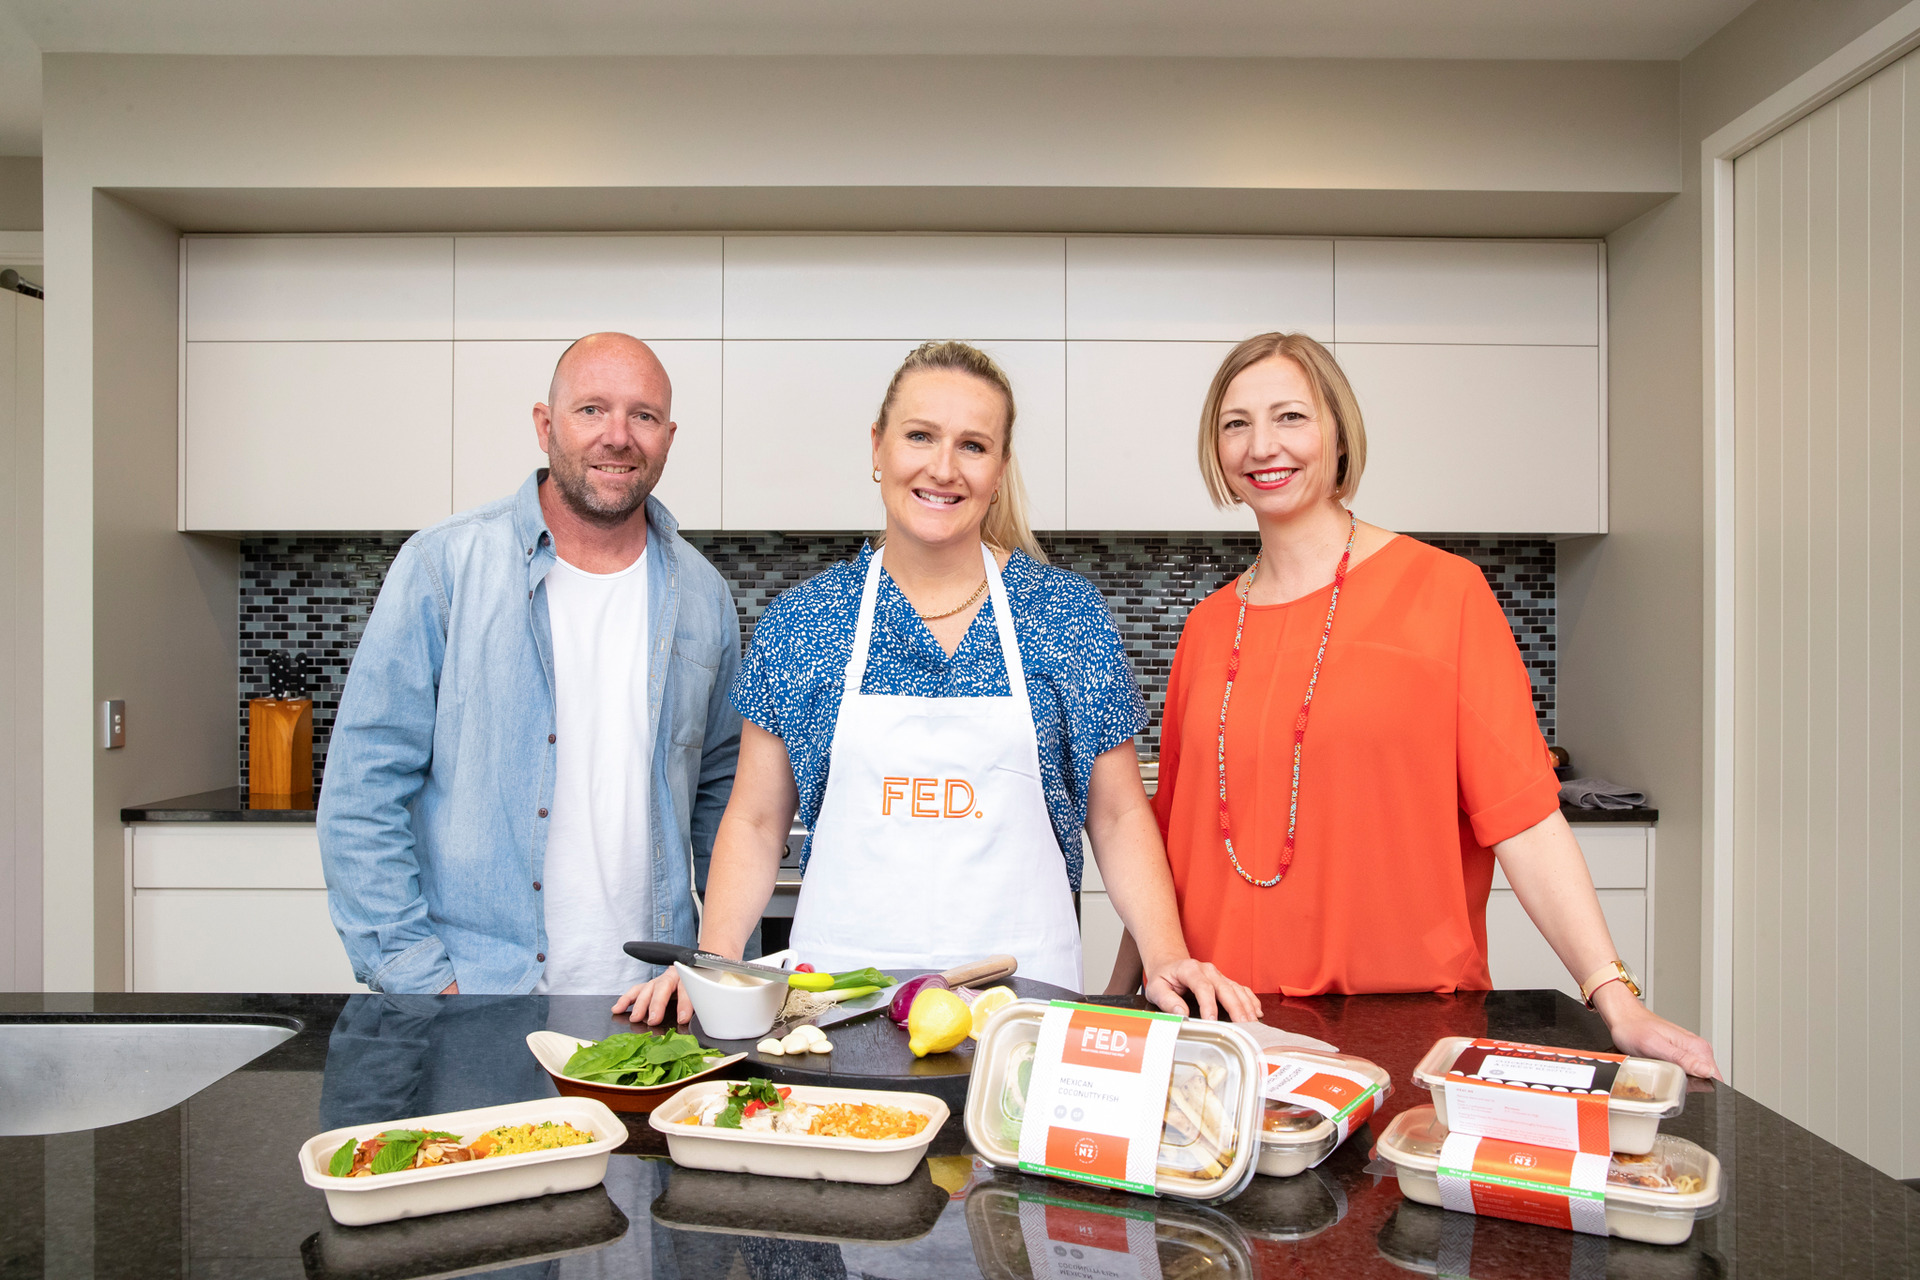 Small Business: Ready-to-eat meals, Fed is doing it old school